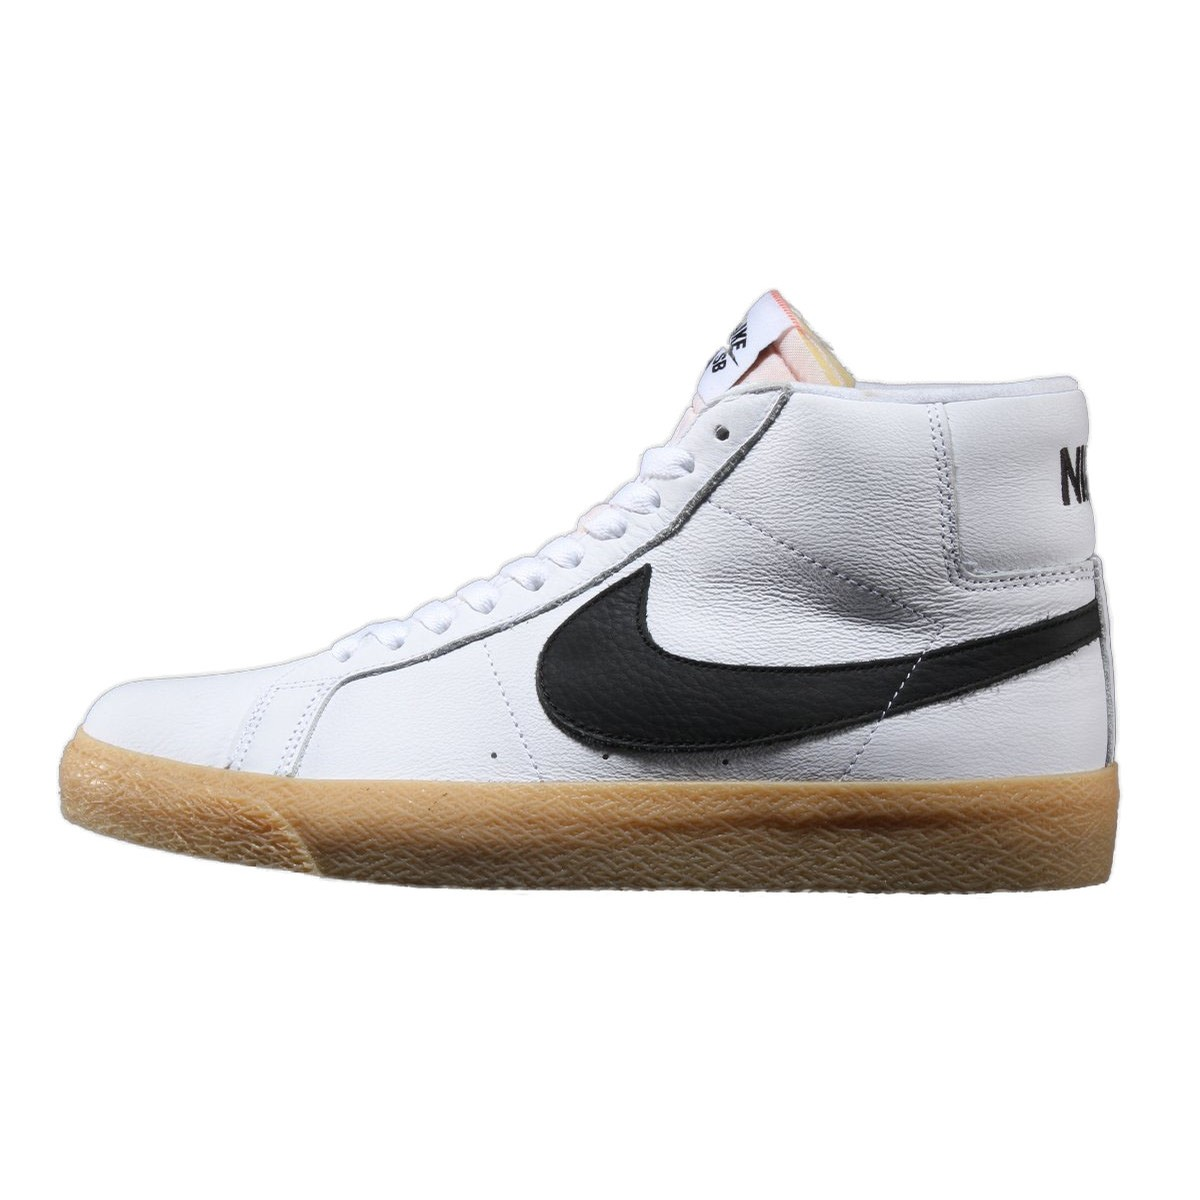 Nike SB - Zoom Blazer Mid ISO - Orange Label